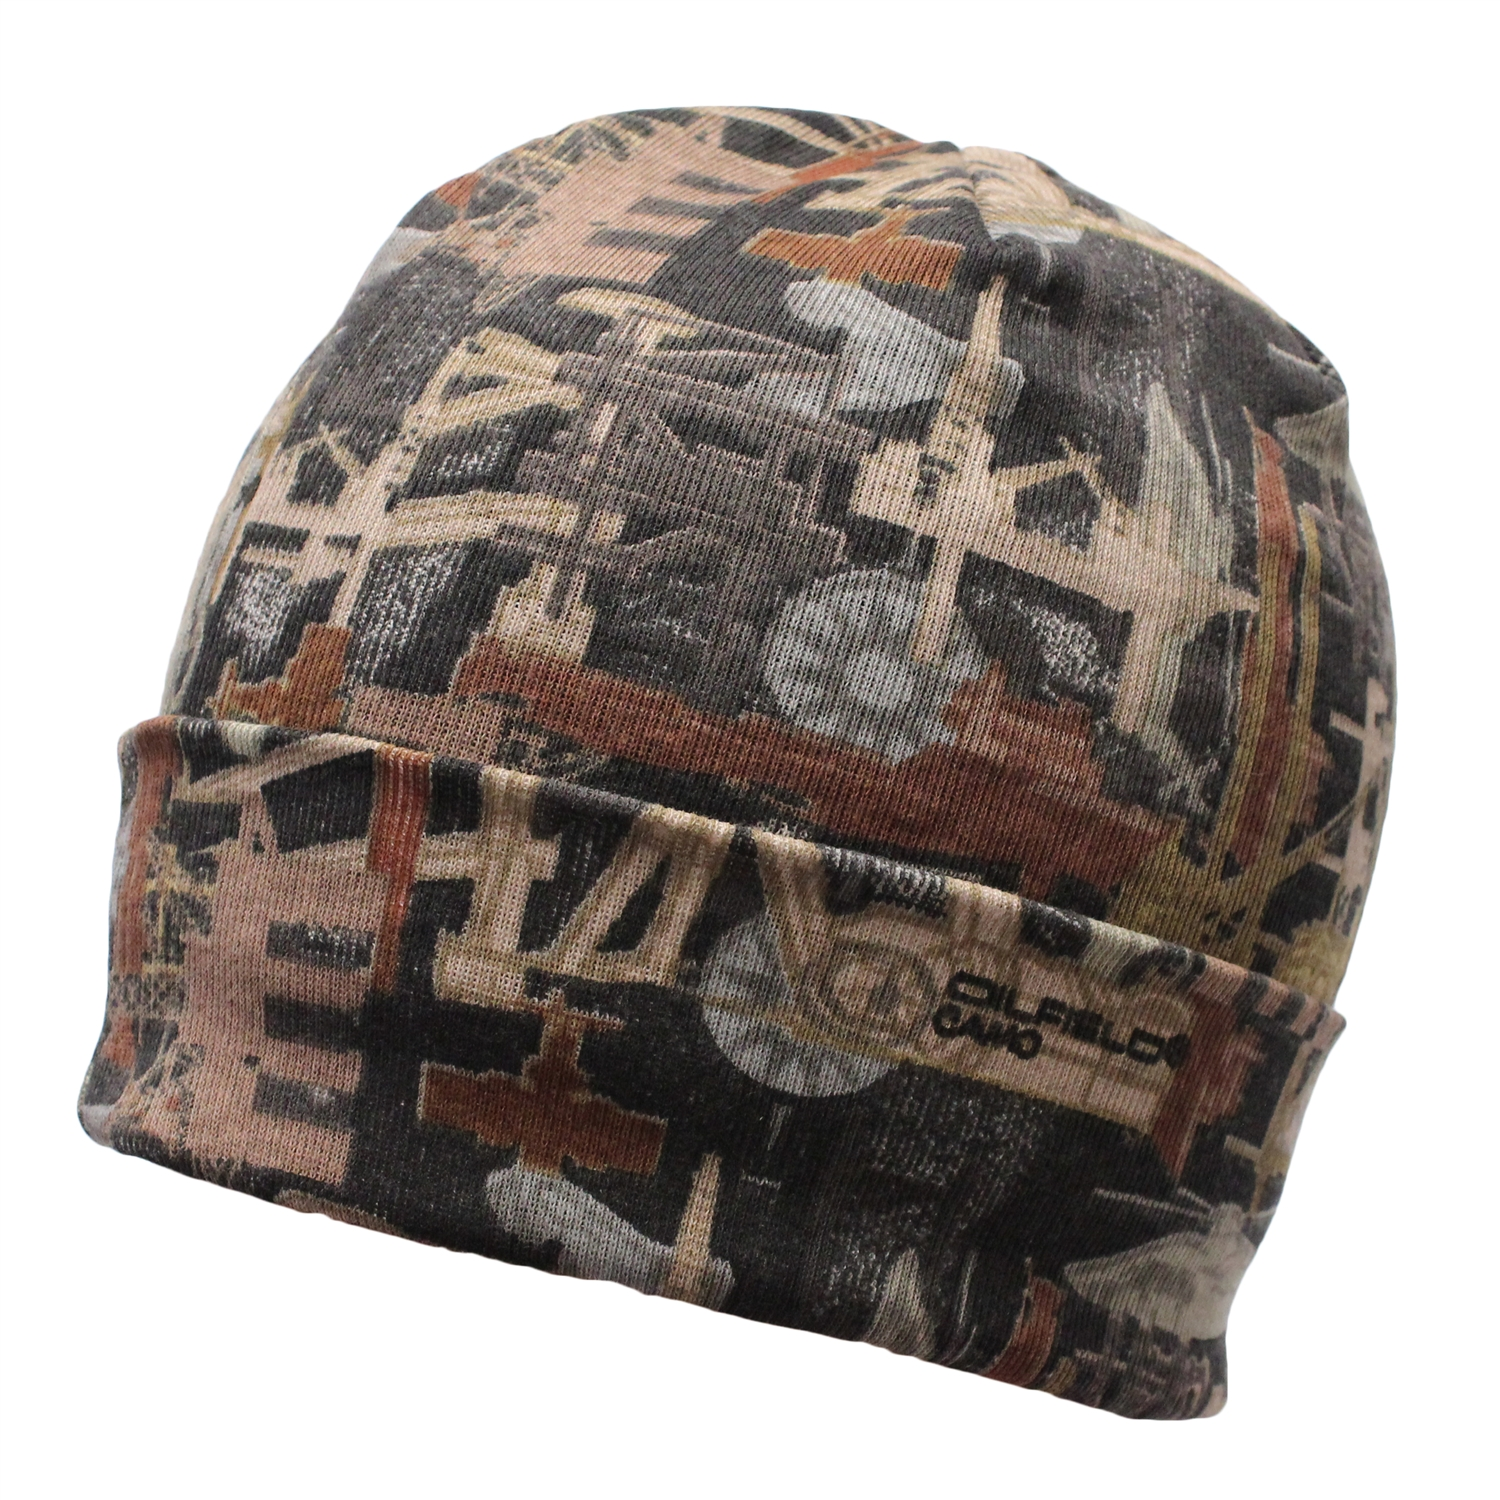 Oilfield Camo 12 Inch Cotton Twill Beanie LCB12  11.99 In stock Eligible  for free shipping ... a66740546d4